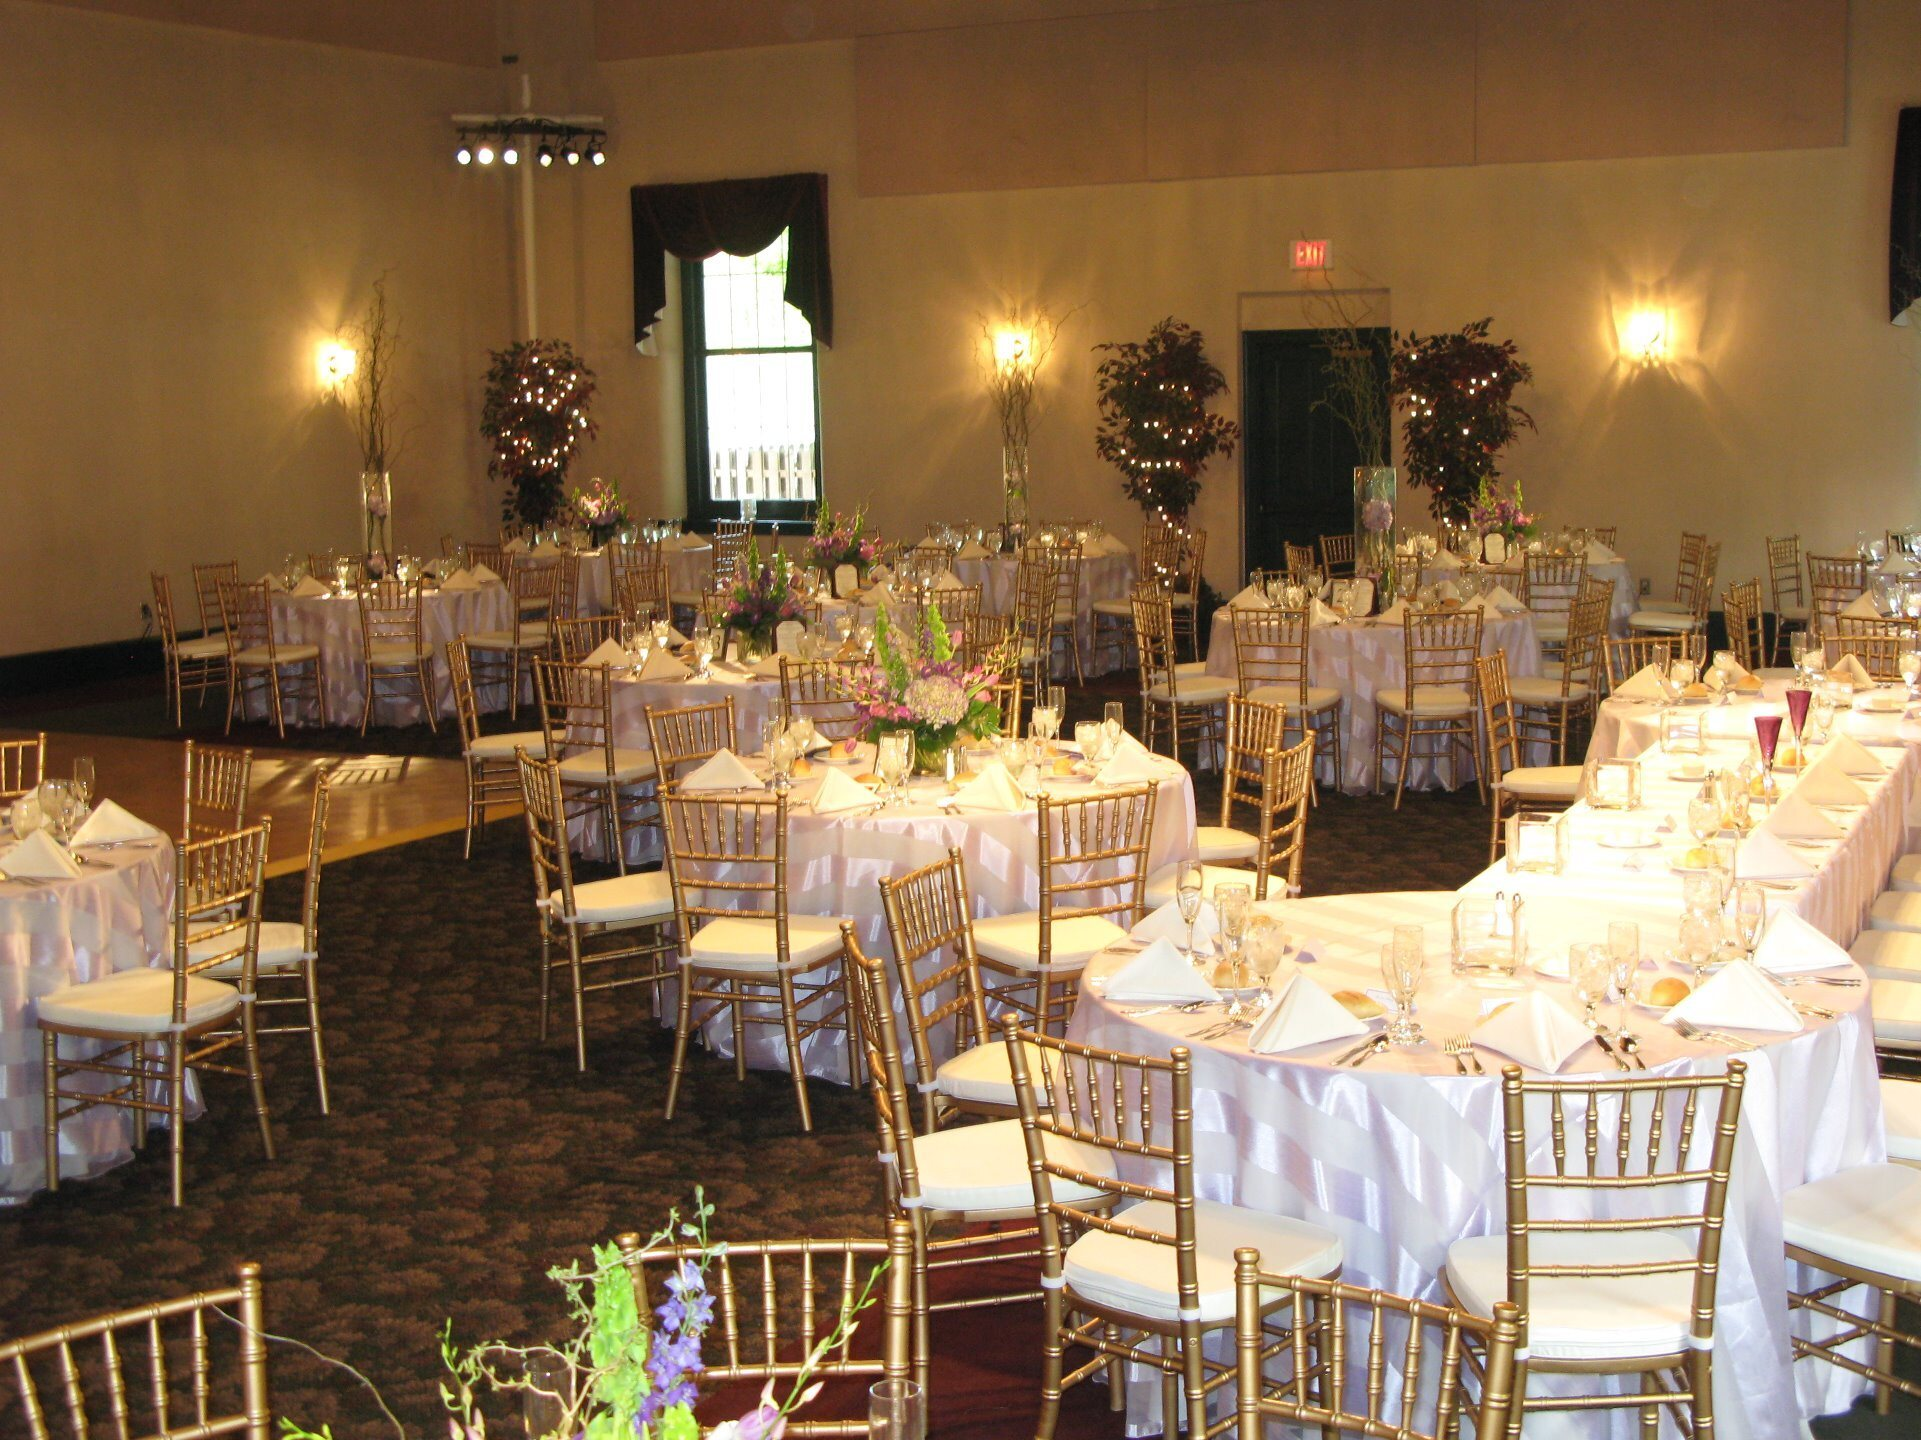 Catering, The, Station, Columbia, Robert ryan catering, Phoenixville